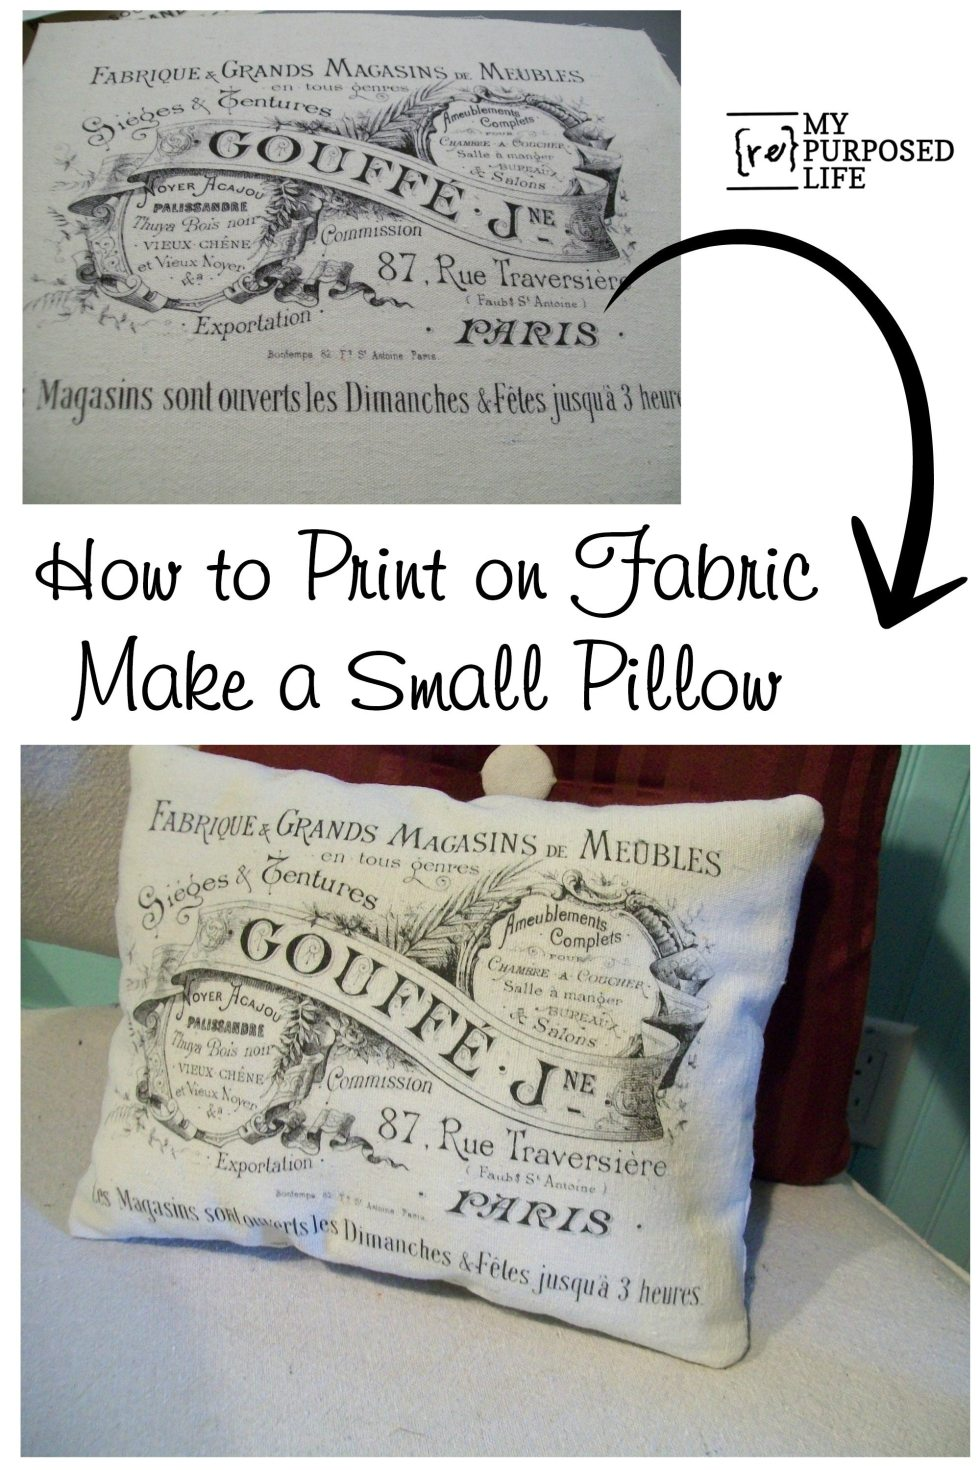 how to print on fabric with a home printer and full label sheets #myrepurposedlife #diy #easy #printonfabric